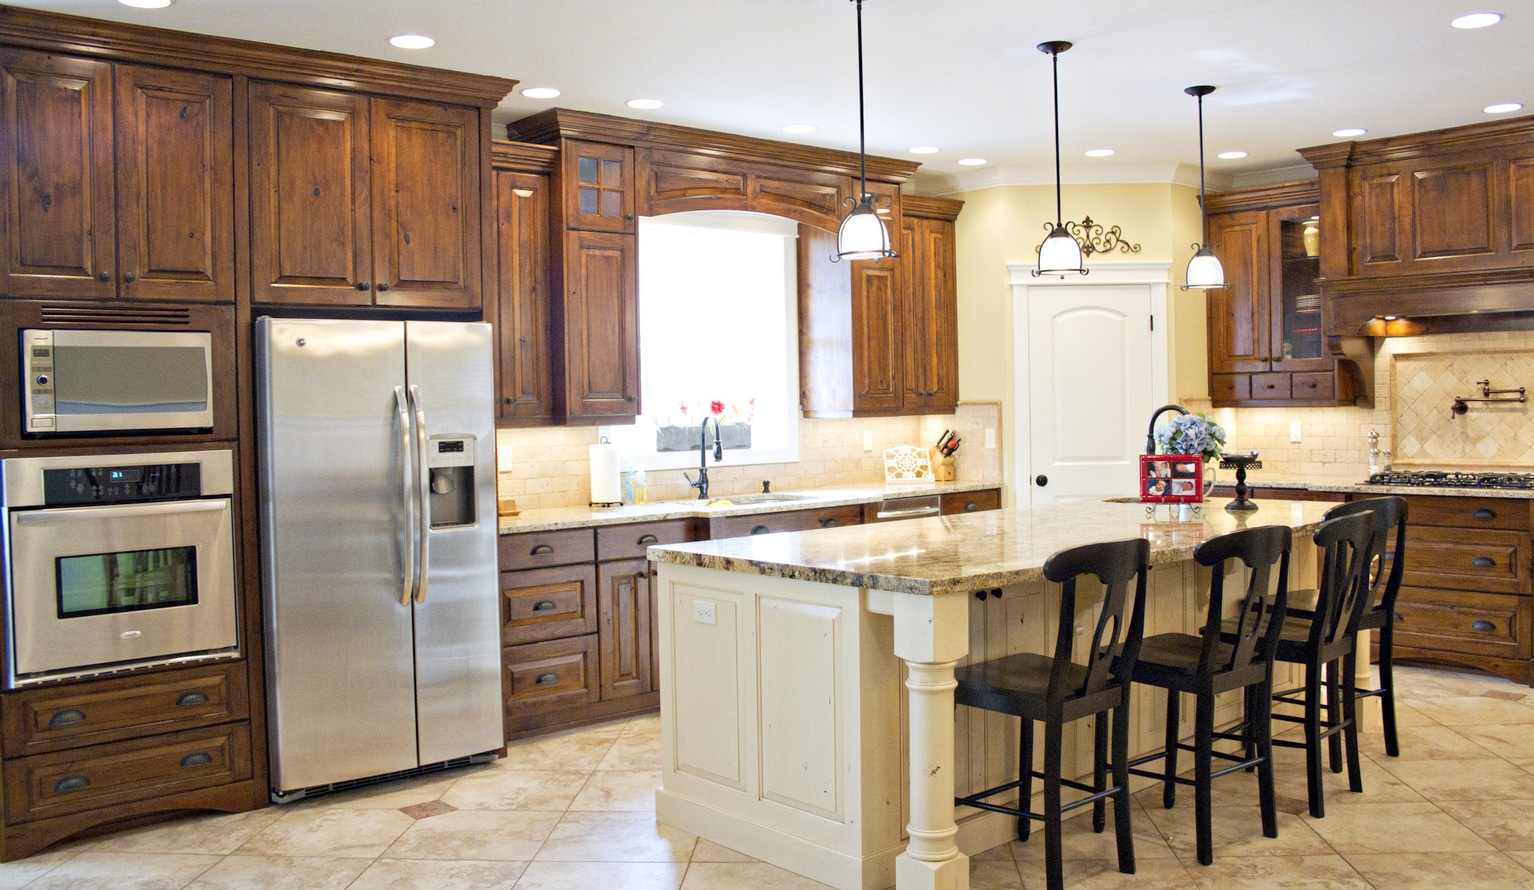 kitchen design images, pictures and idea